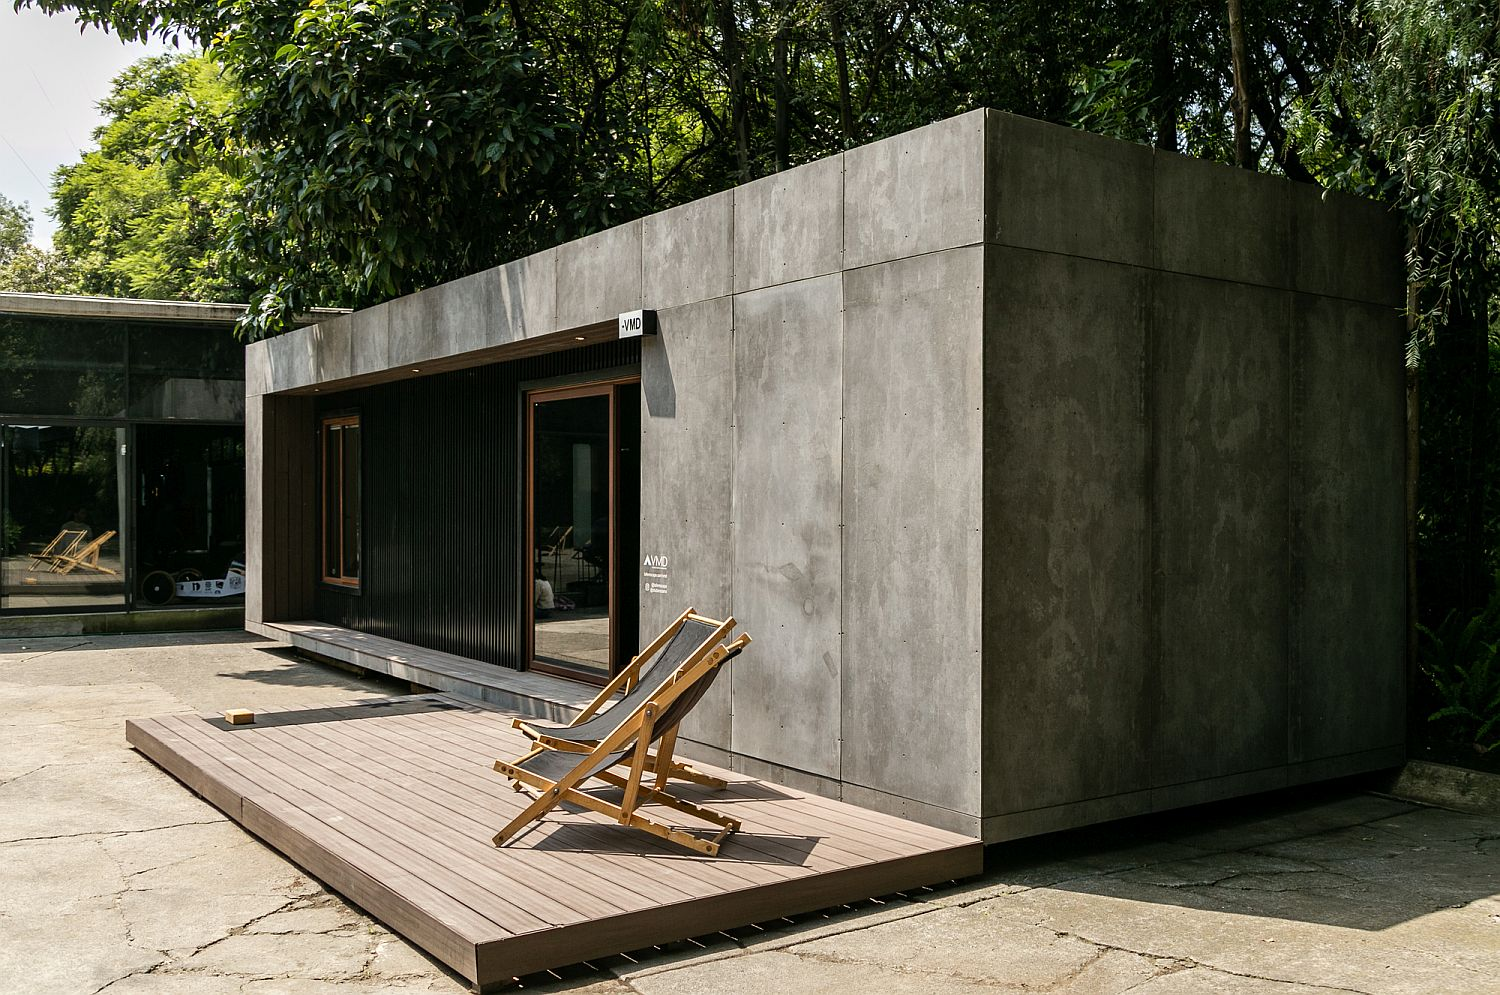 Smart solutions and eco-sensitive design help create this cool prefab